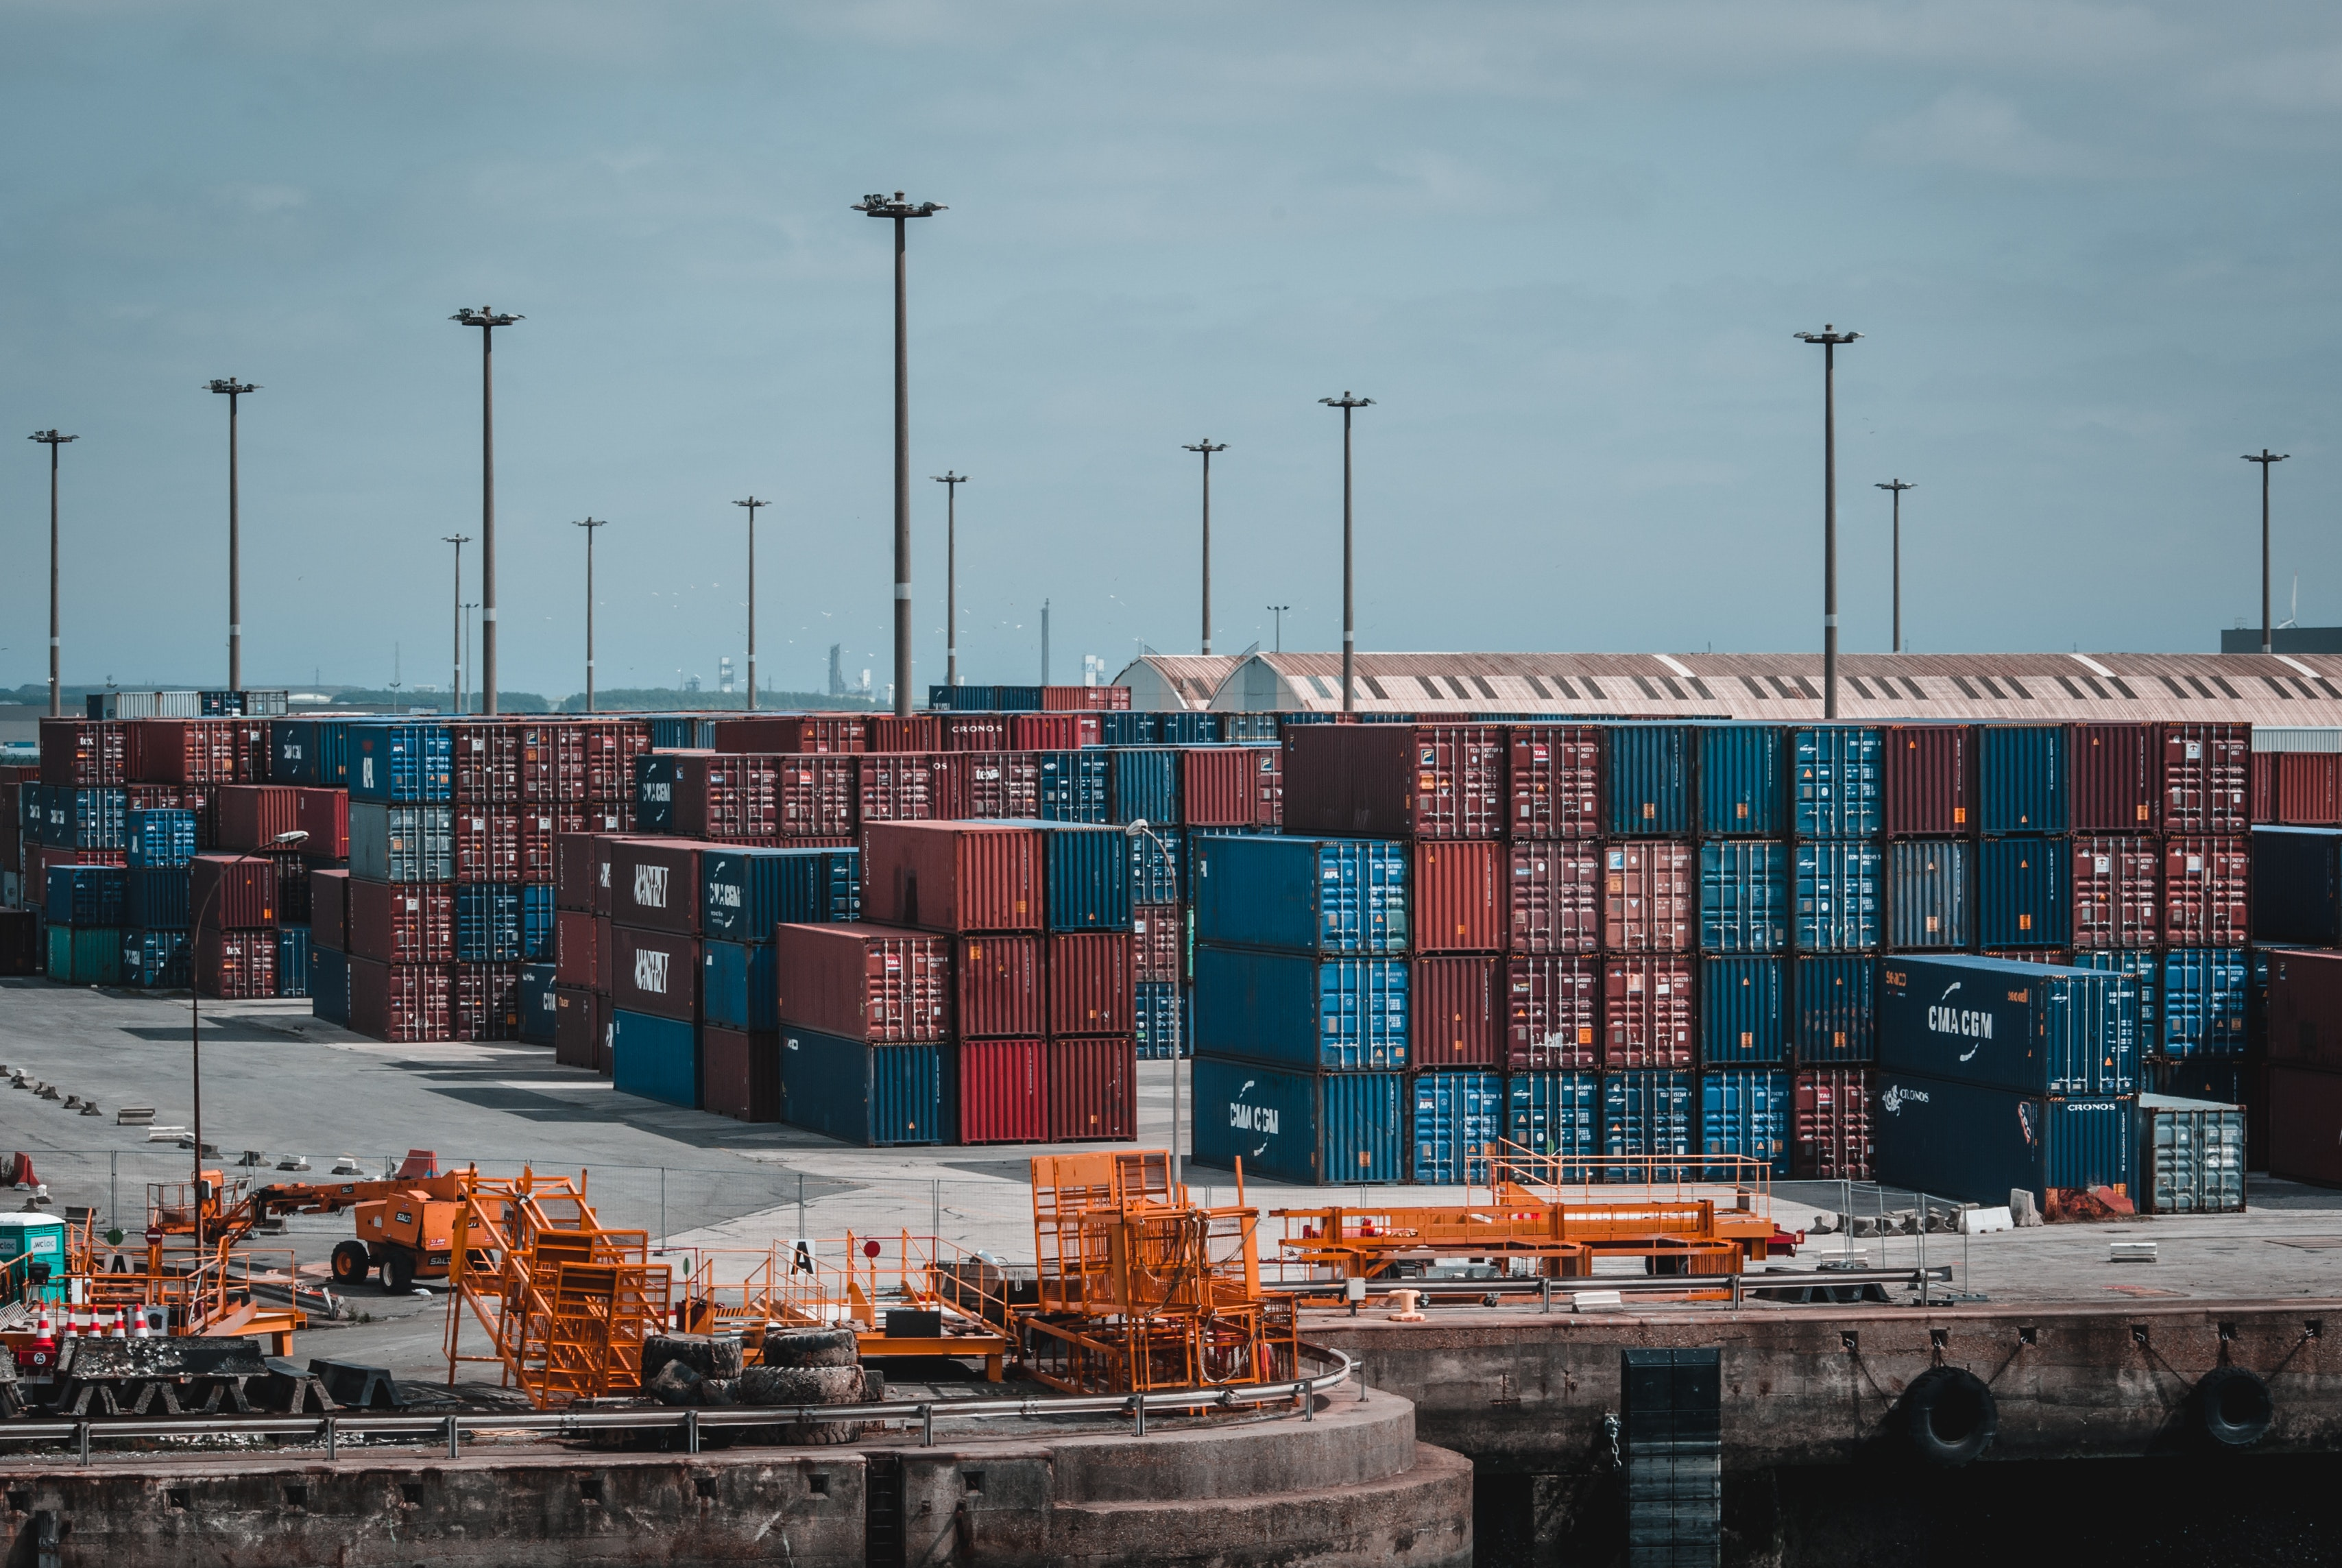 Tech Giants Improving Supply Chains in the Wake of COVID-19